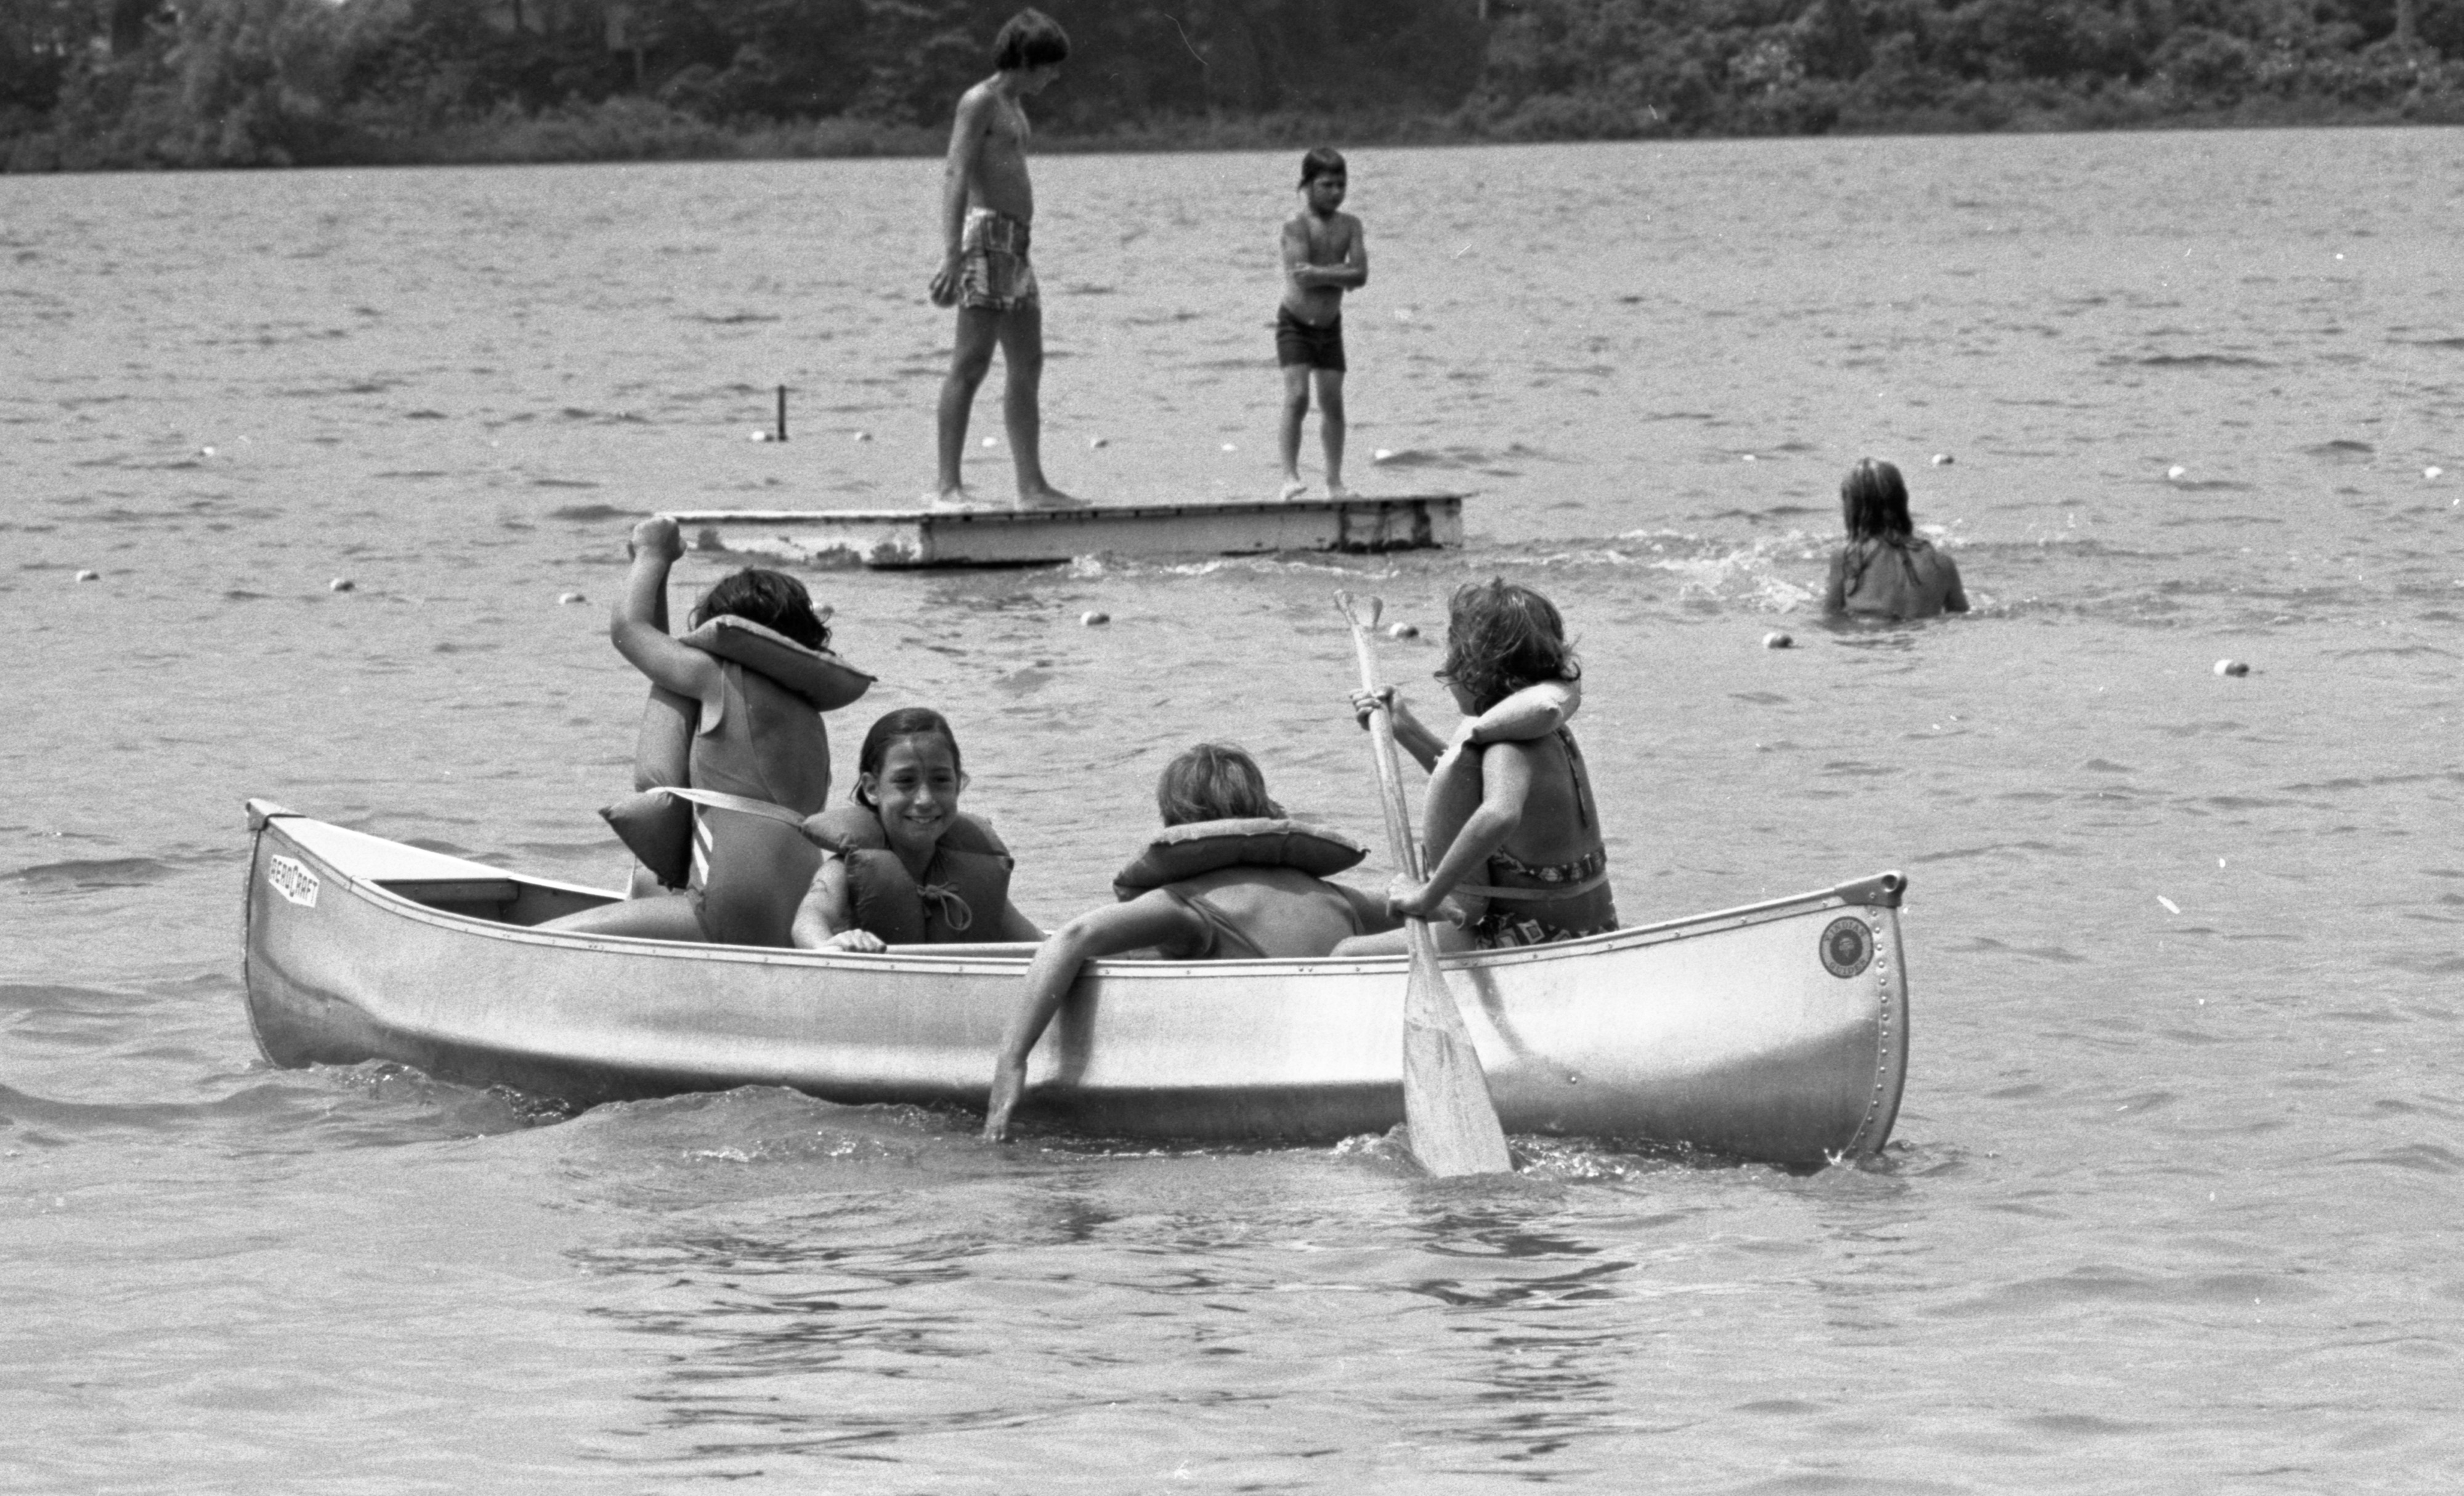 Canoeing On Silver Lake At YM-YWCA Camp Birkett, July 1973 image